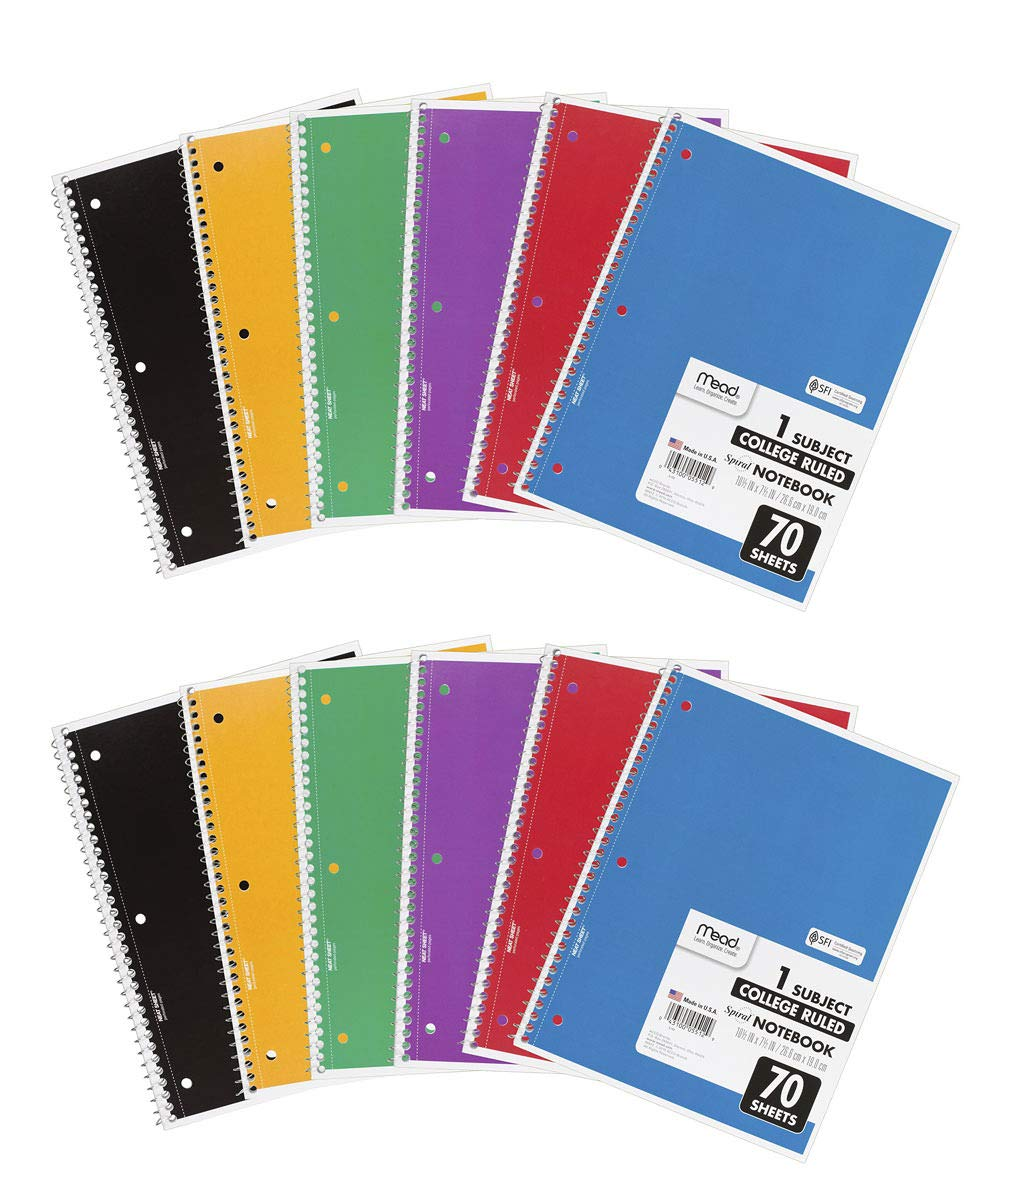 Mead IUYEHDUH Spiral Notebooks, 1 Subject, College Ruled Paper, 70 Sheets, 10-1/2'' x 7-1/2'', Assorted Colors, 6 Pack (73065) 12 Pack